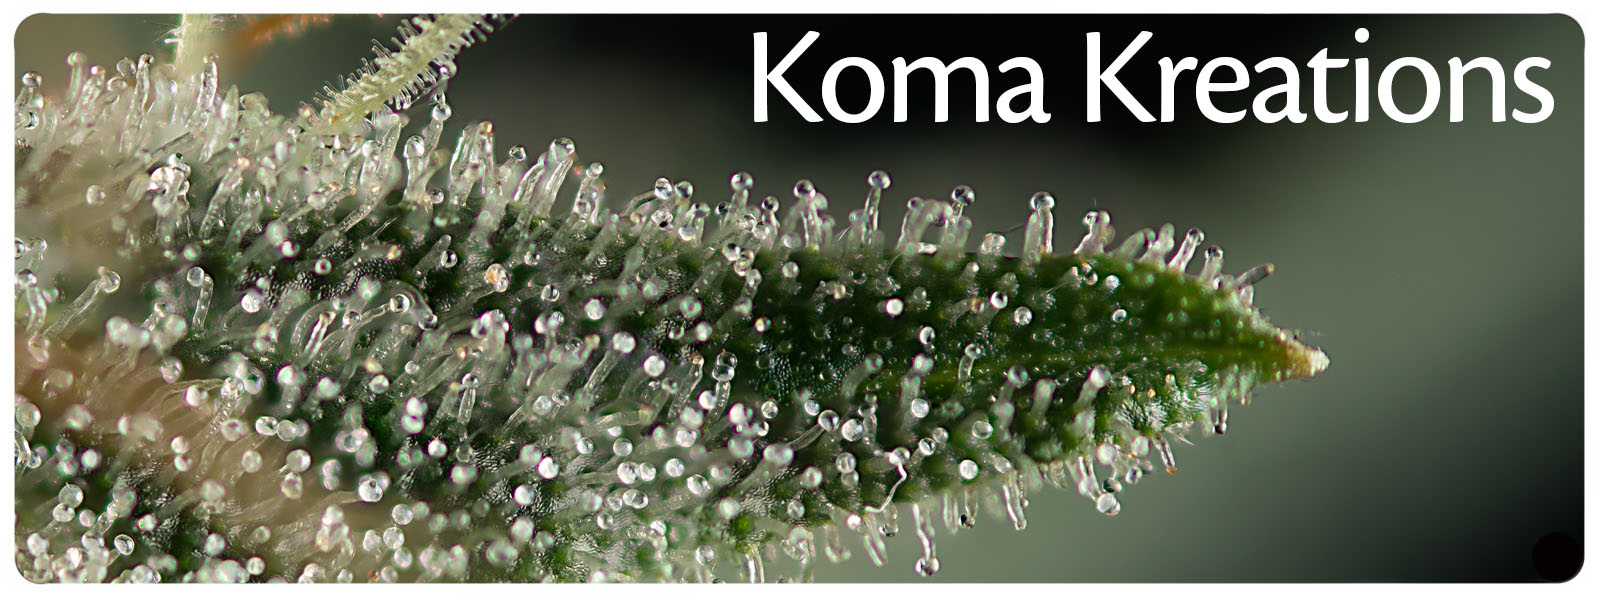 Koma kreations supplies medical hybrid cannabis seeds with old school genetics